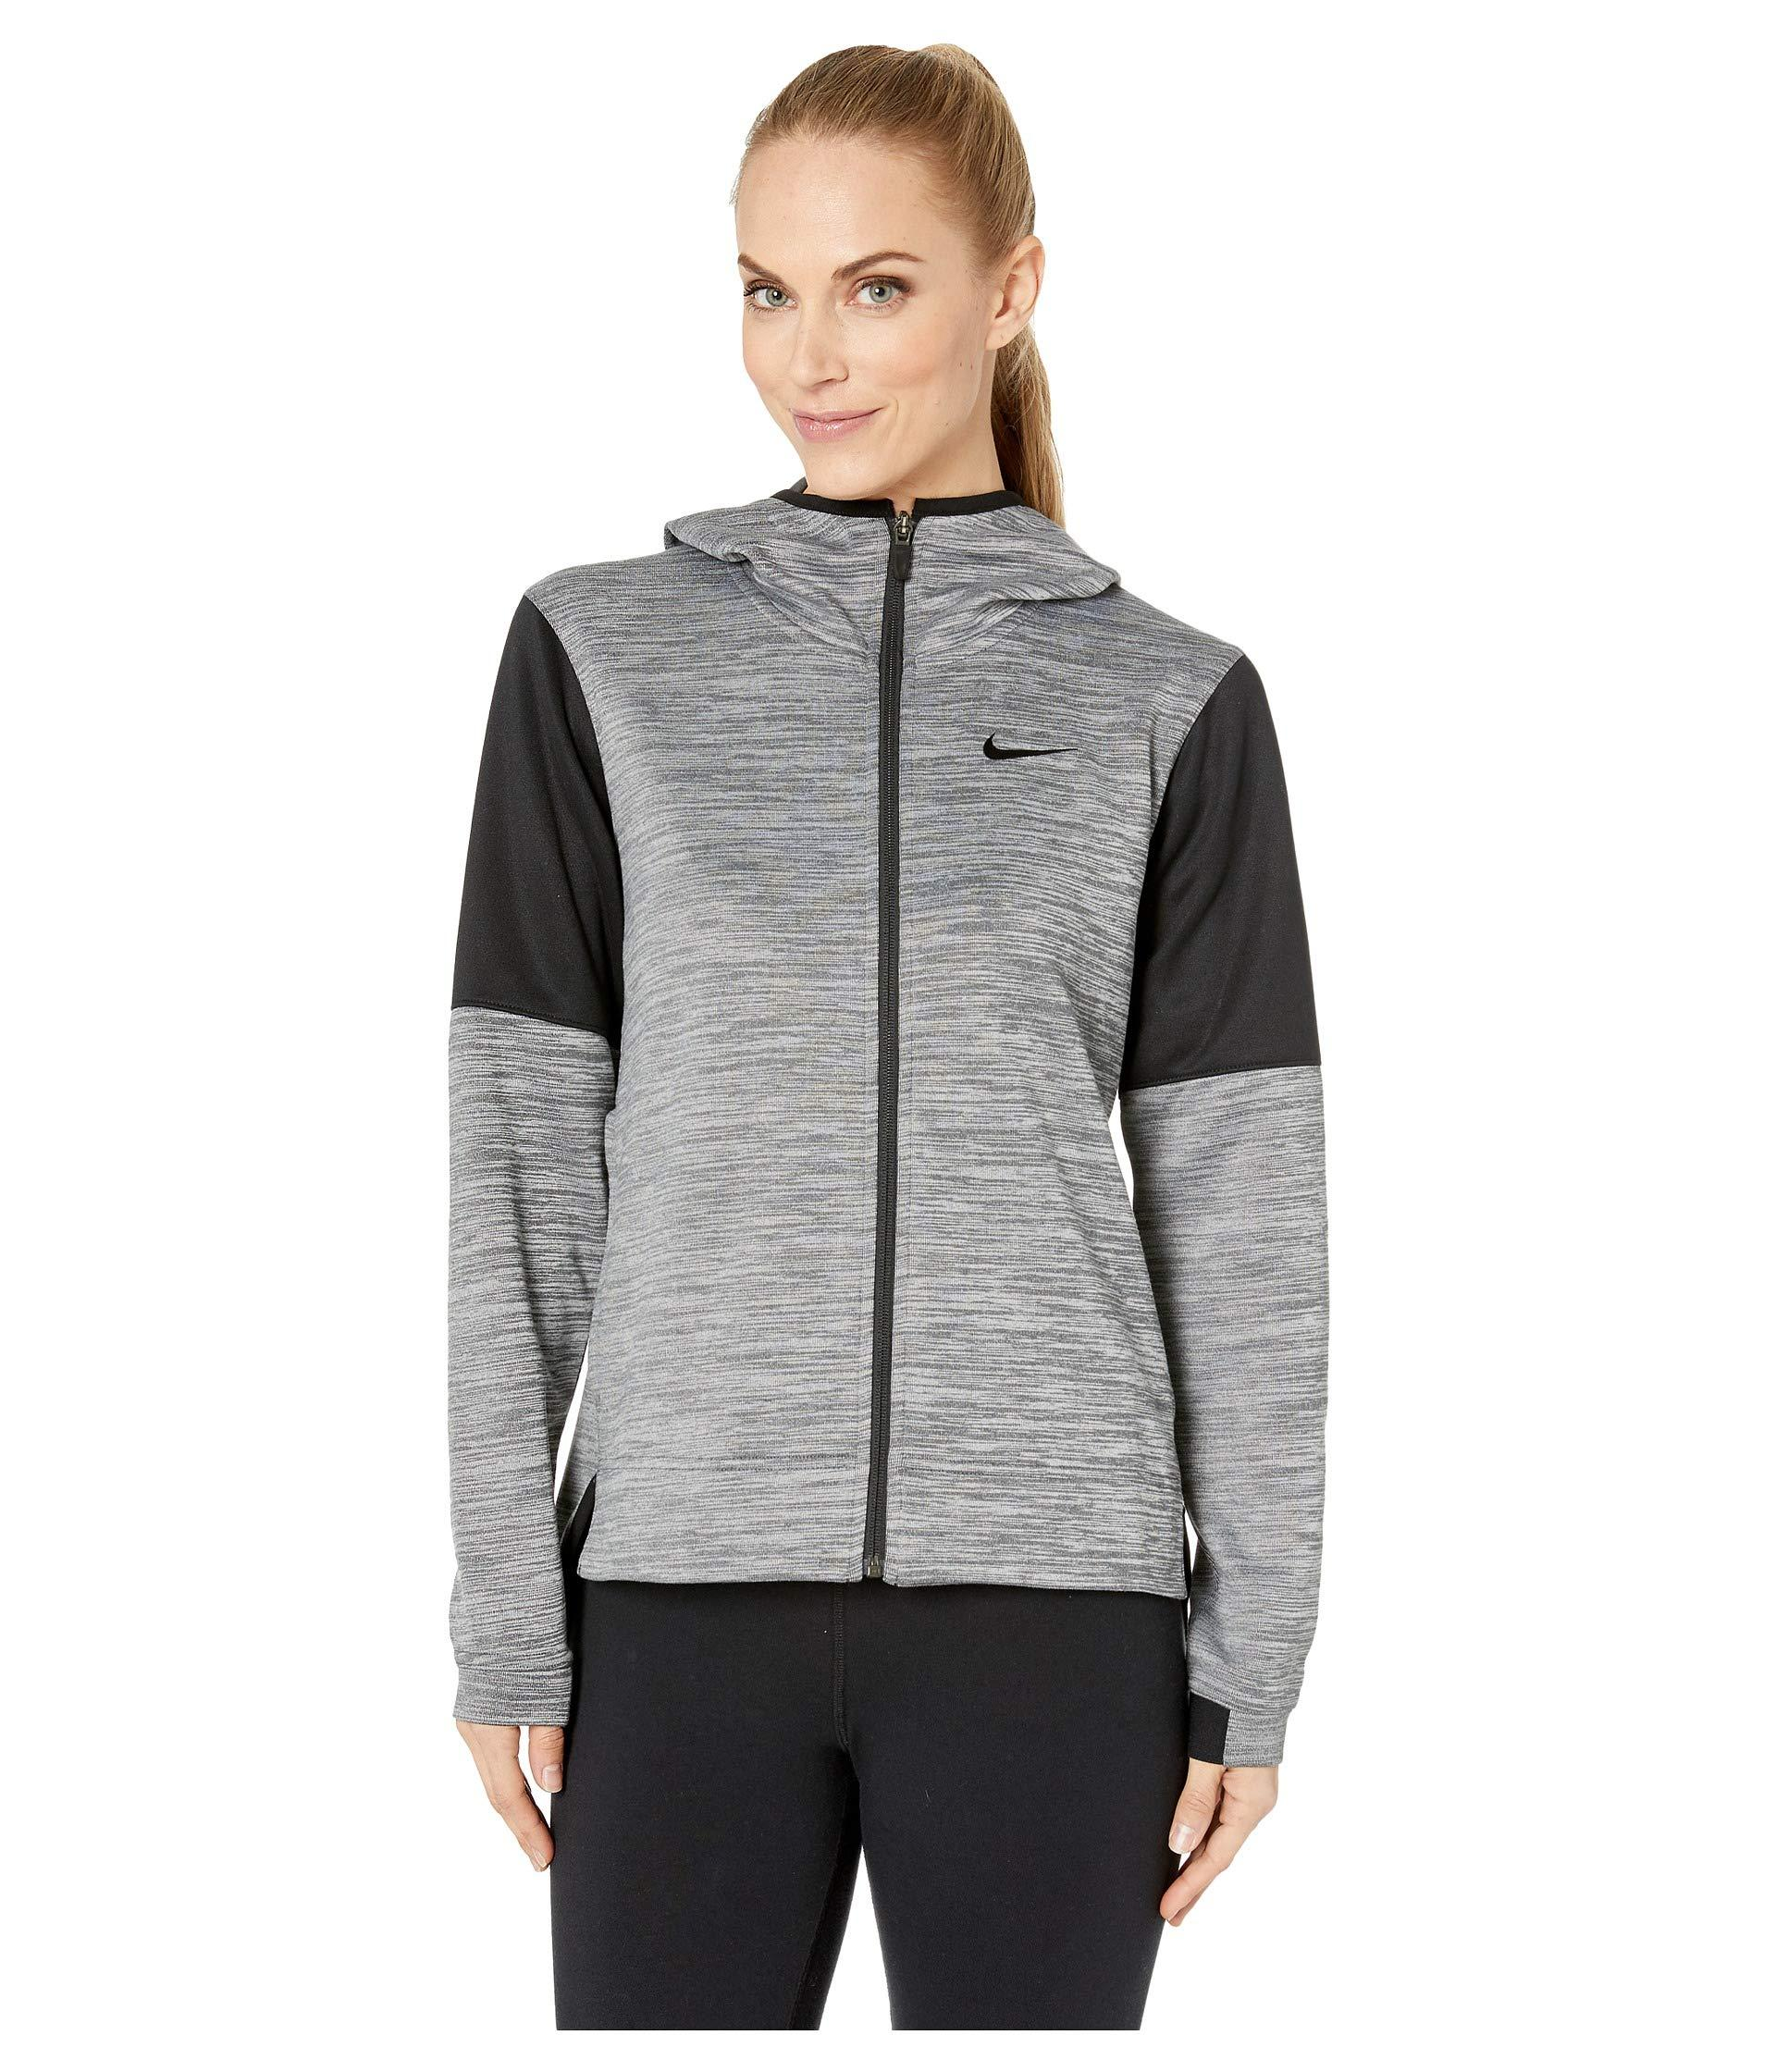 87ec5163e243 Lyst - Nike Spotlight Full Zip Hoodie in Gray